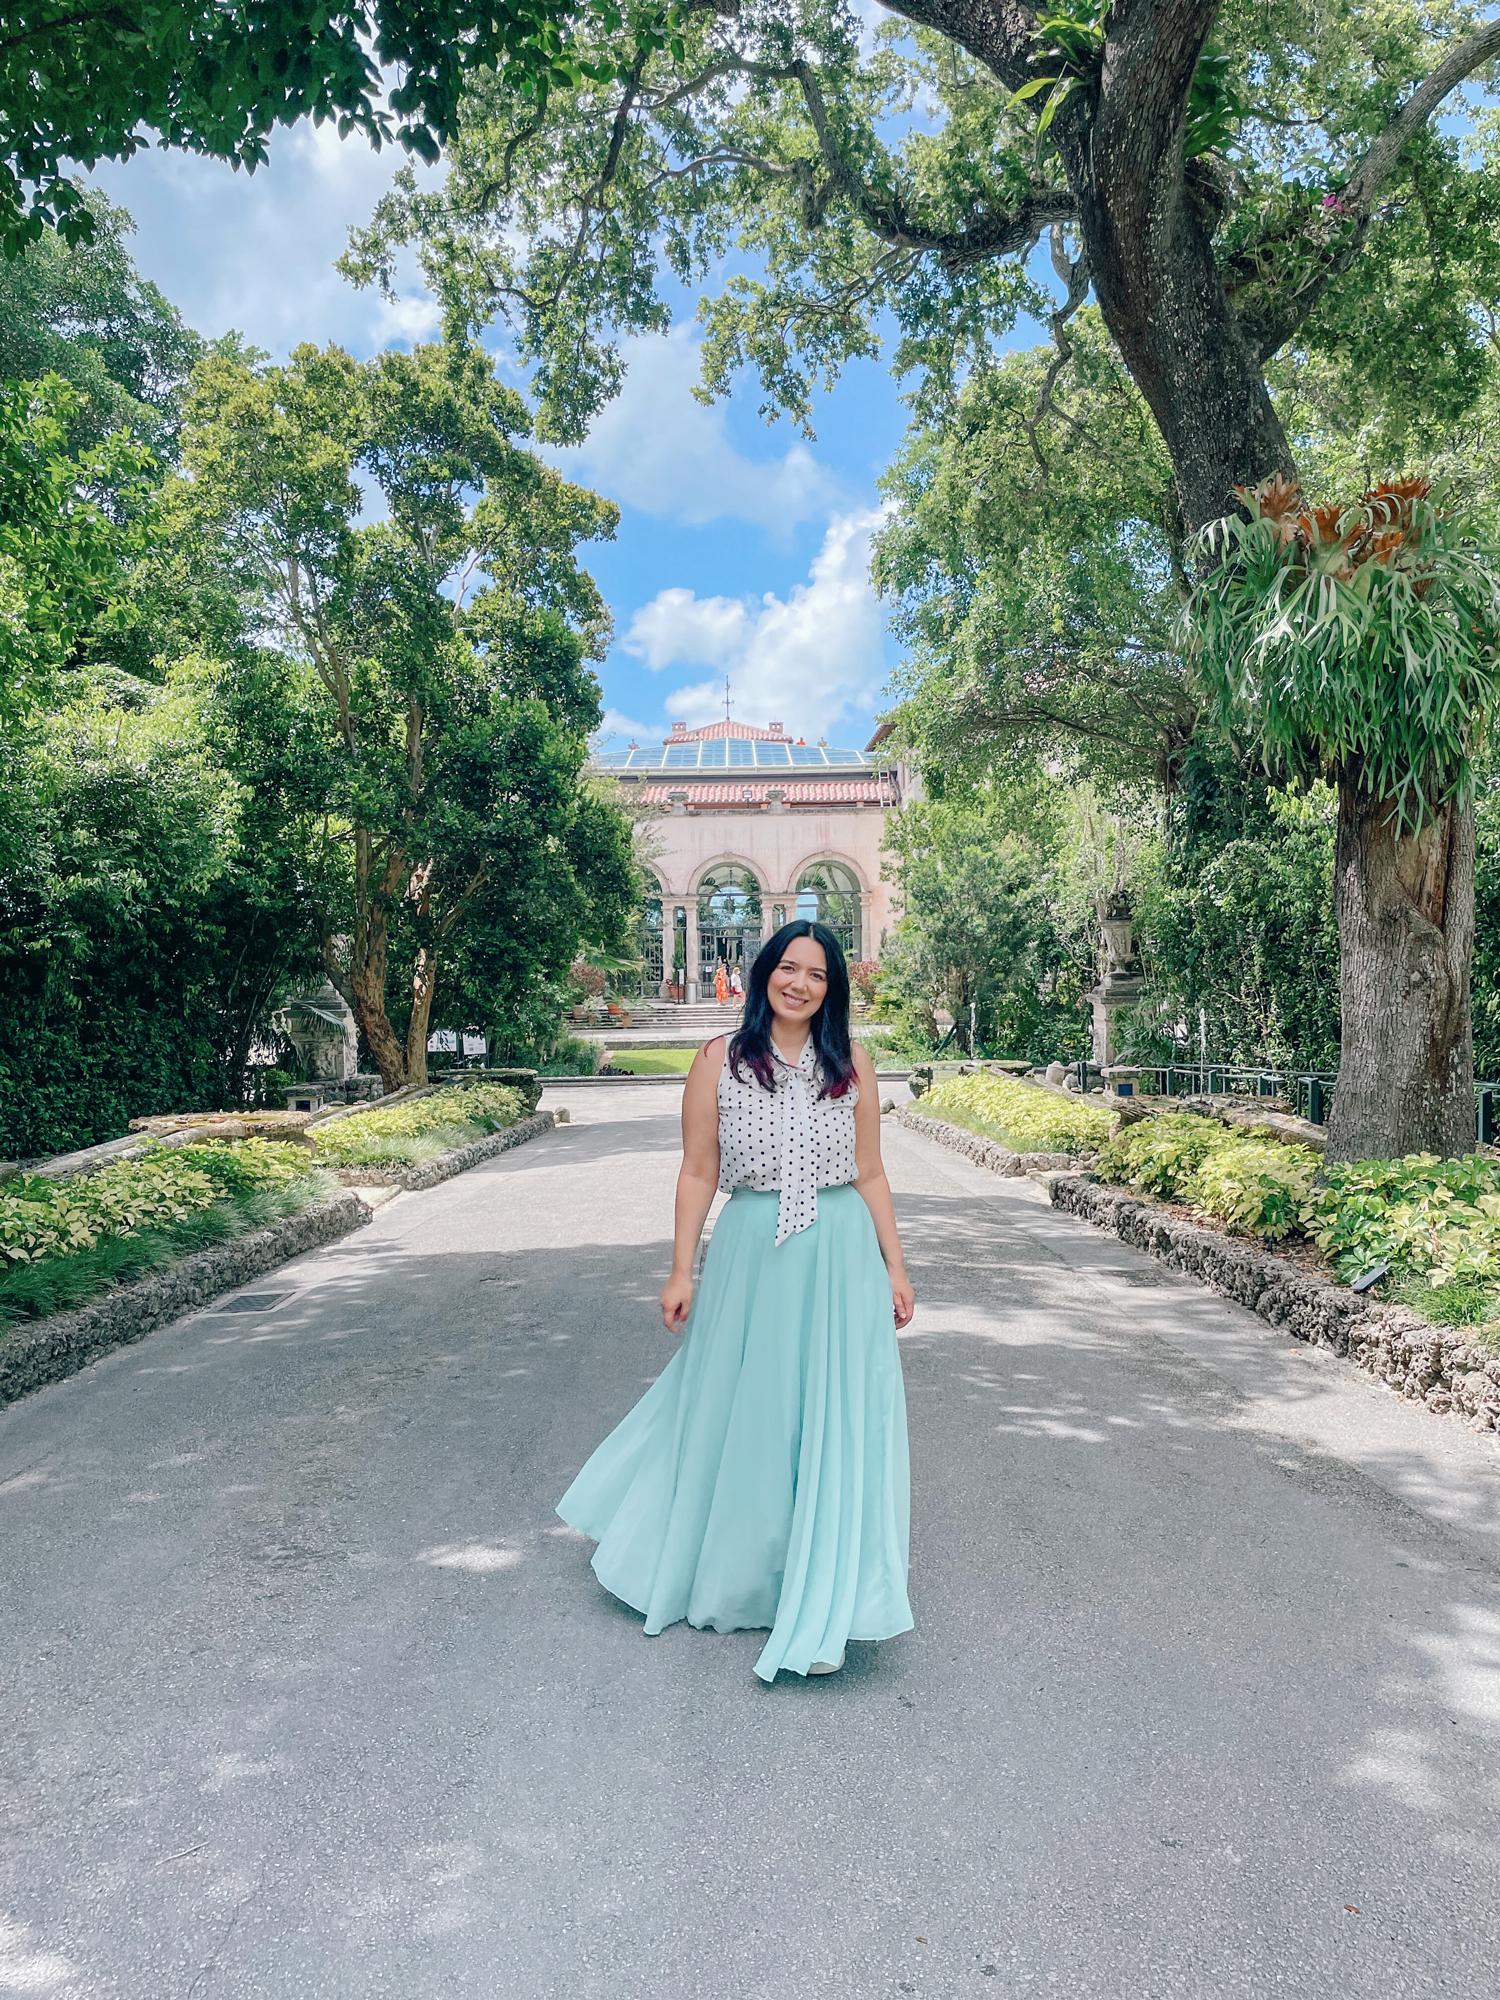 Best Things To Do in Miami: Vizacaya Museum & Gardens entrance